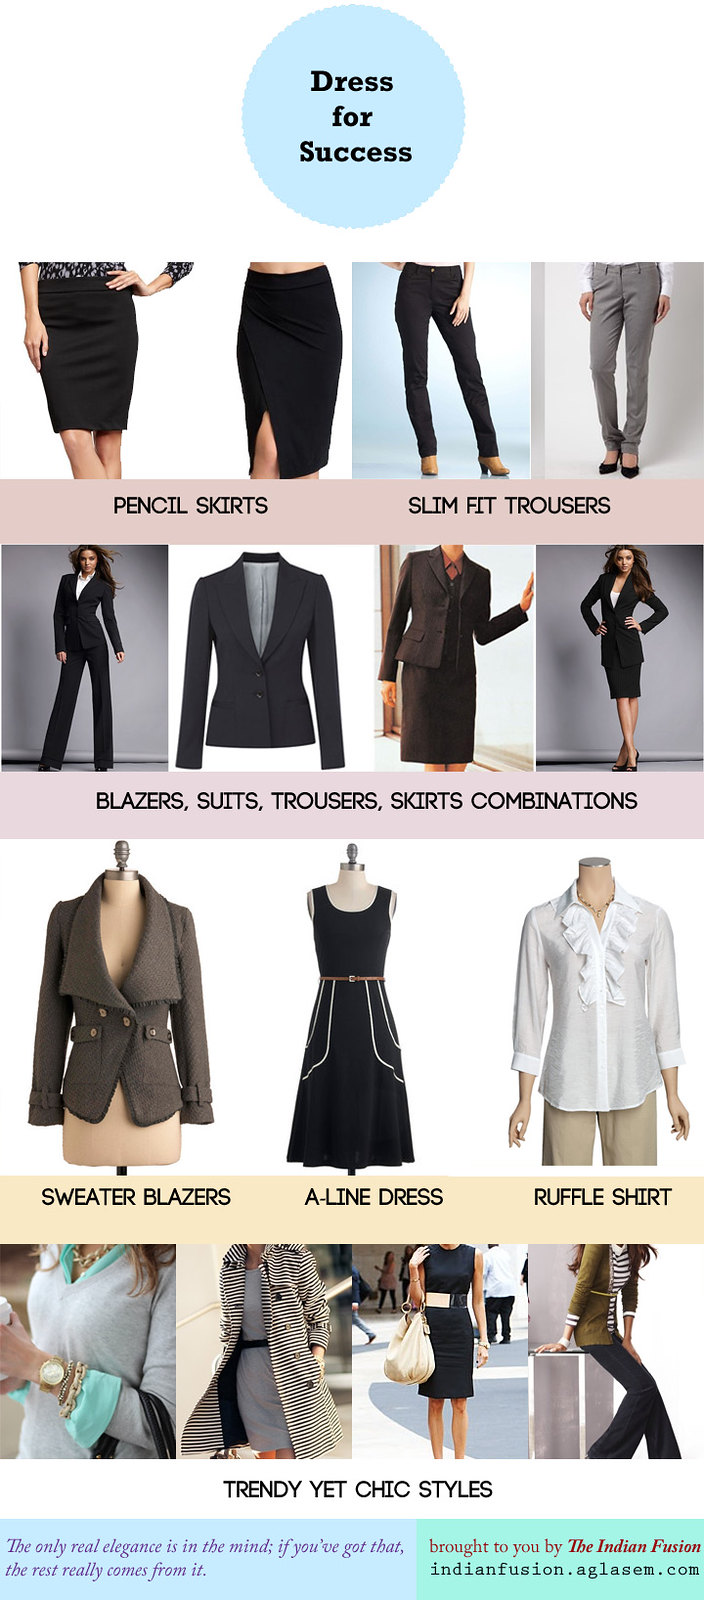 Women Office wear guide